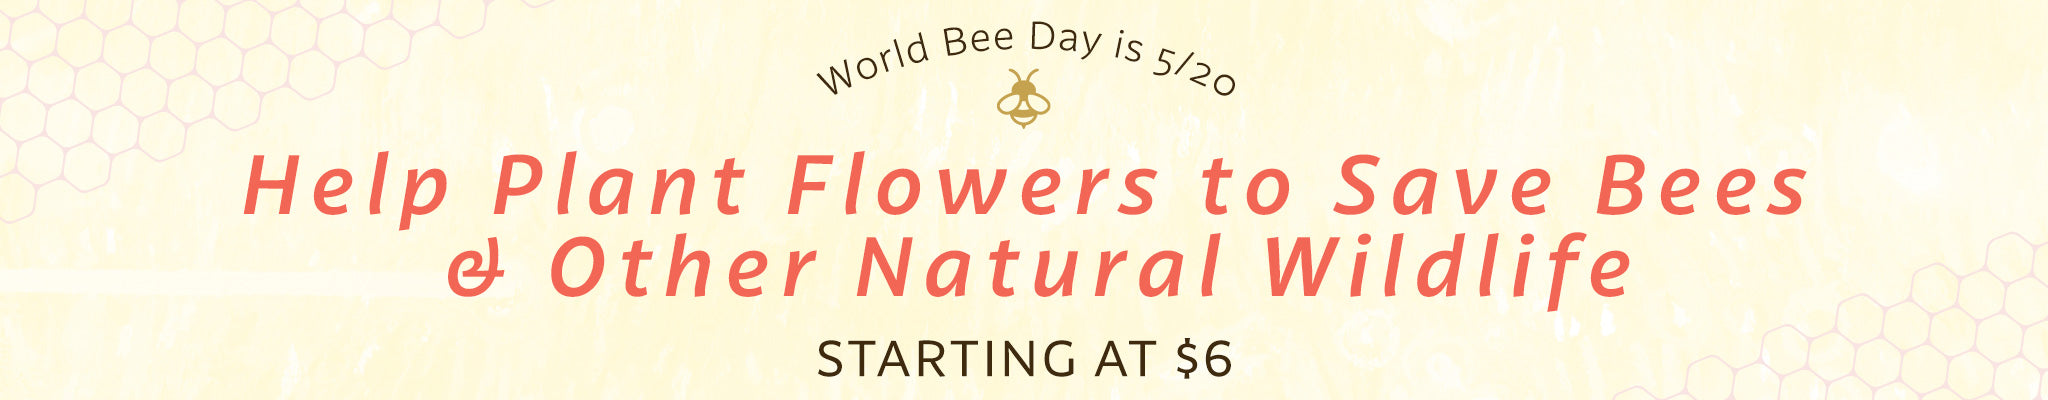 World Bee Day is 5/20   Help Plant Flowers to Save Bees & Other Natural Wildlife   Starting at $6